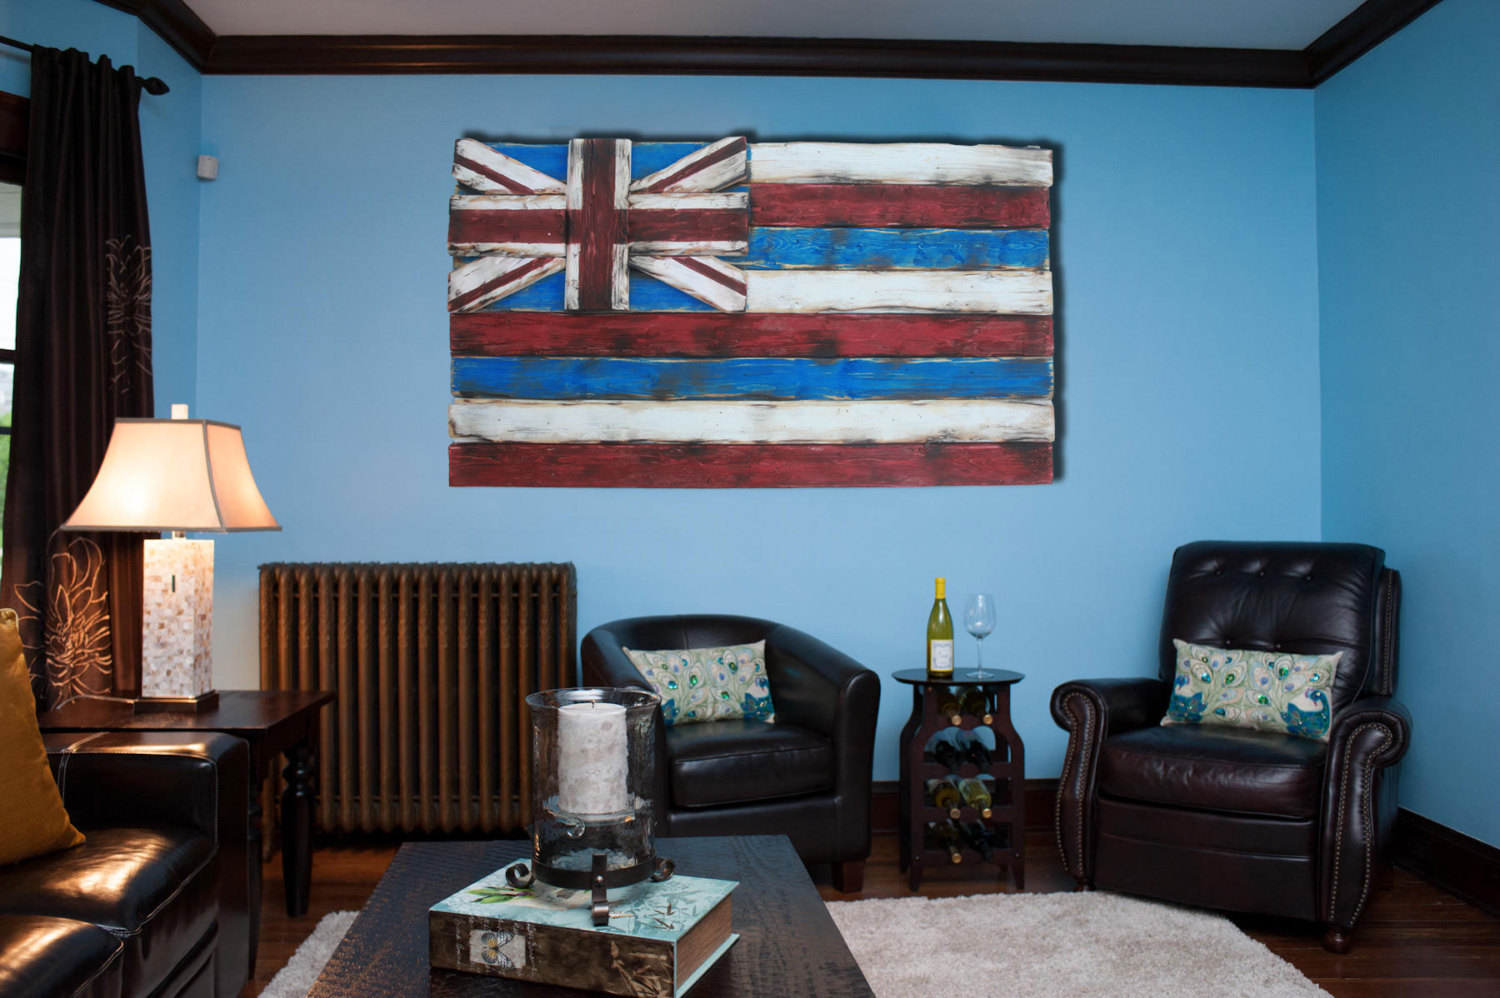 Best Weathered Wood One Of A Kind 3D Hawaii State Flag Wooden This Month